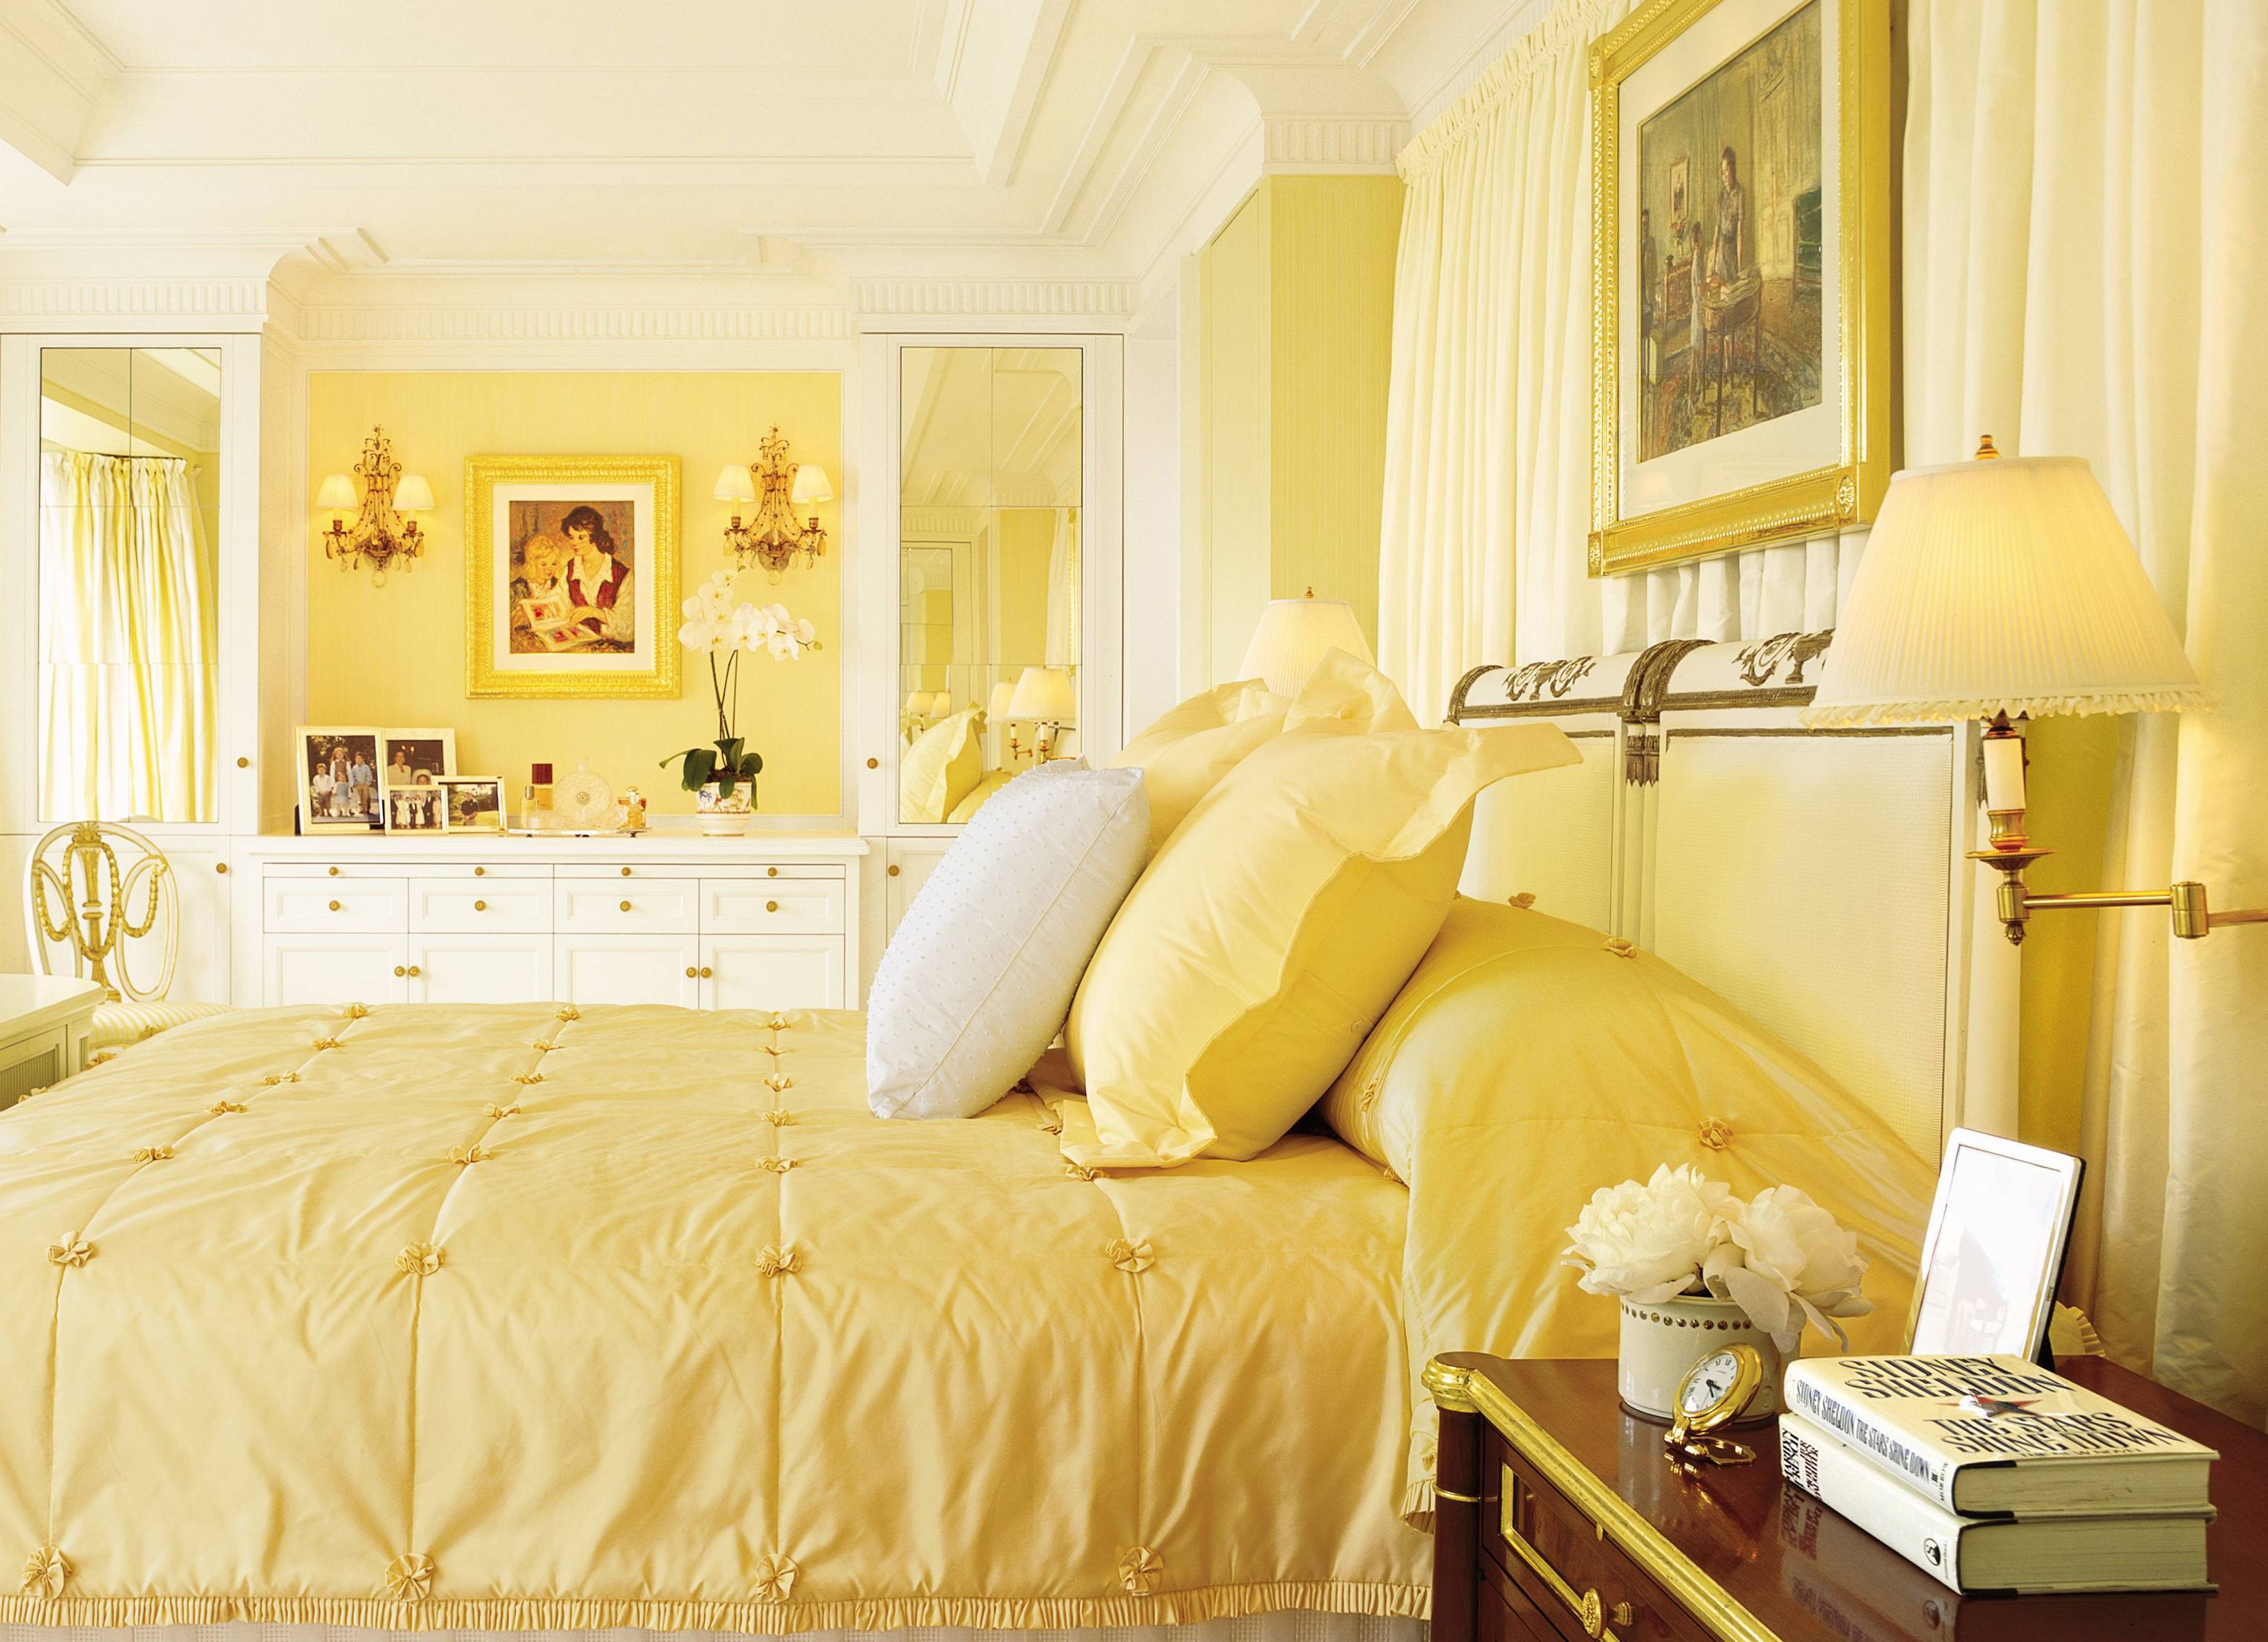 Bedroom by William Hodgins and CBT/Childs Bertman Tseckares in ...